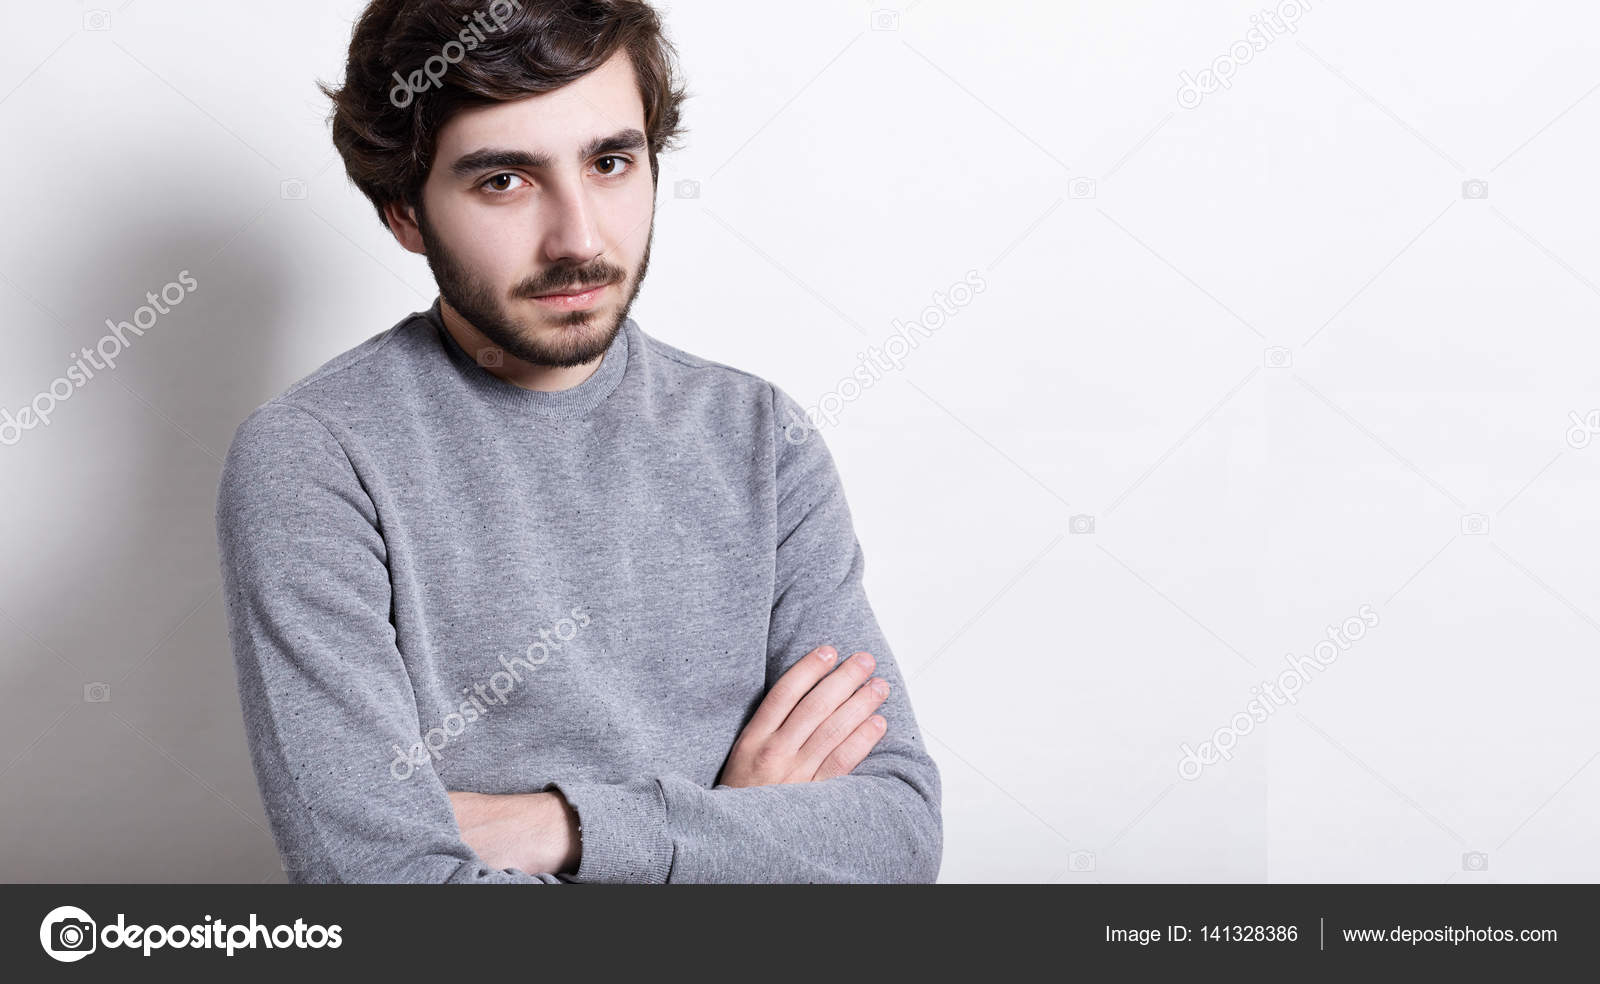 Headshot of fashionable young hipster with trendy hairstyle